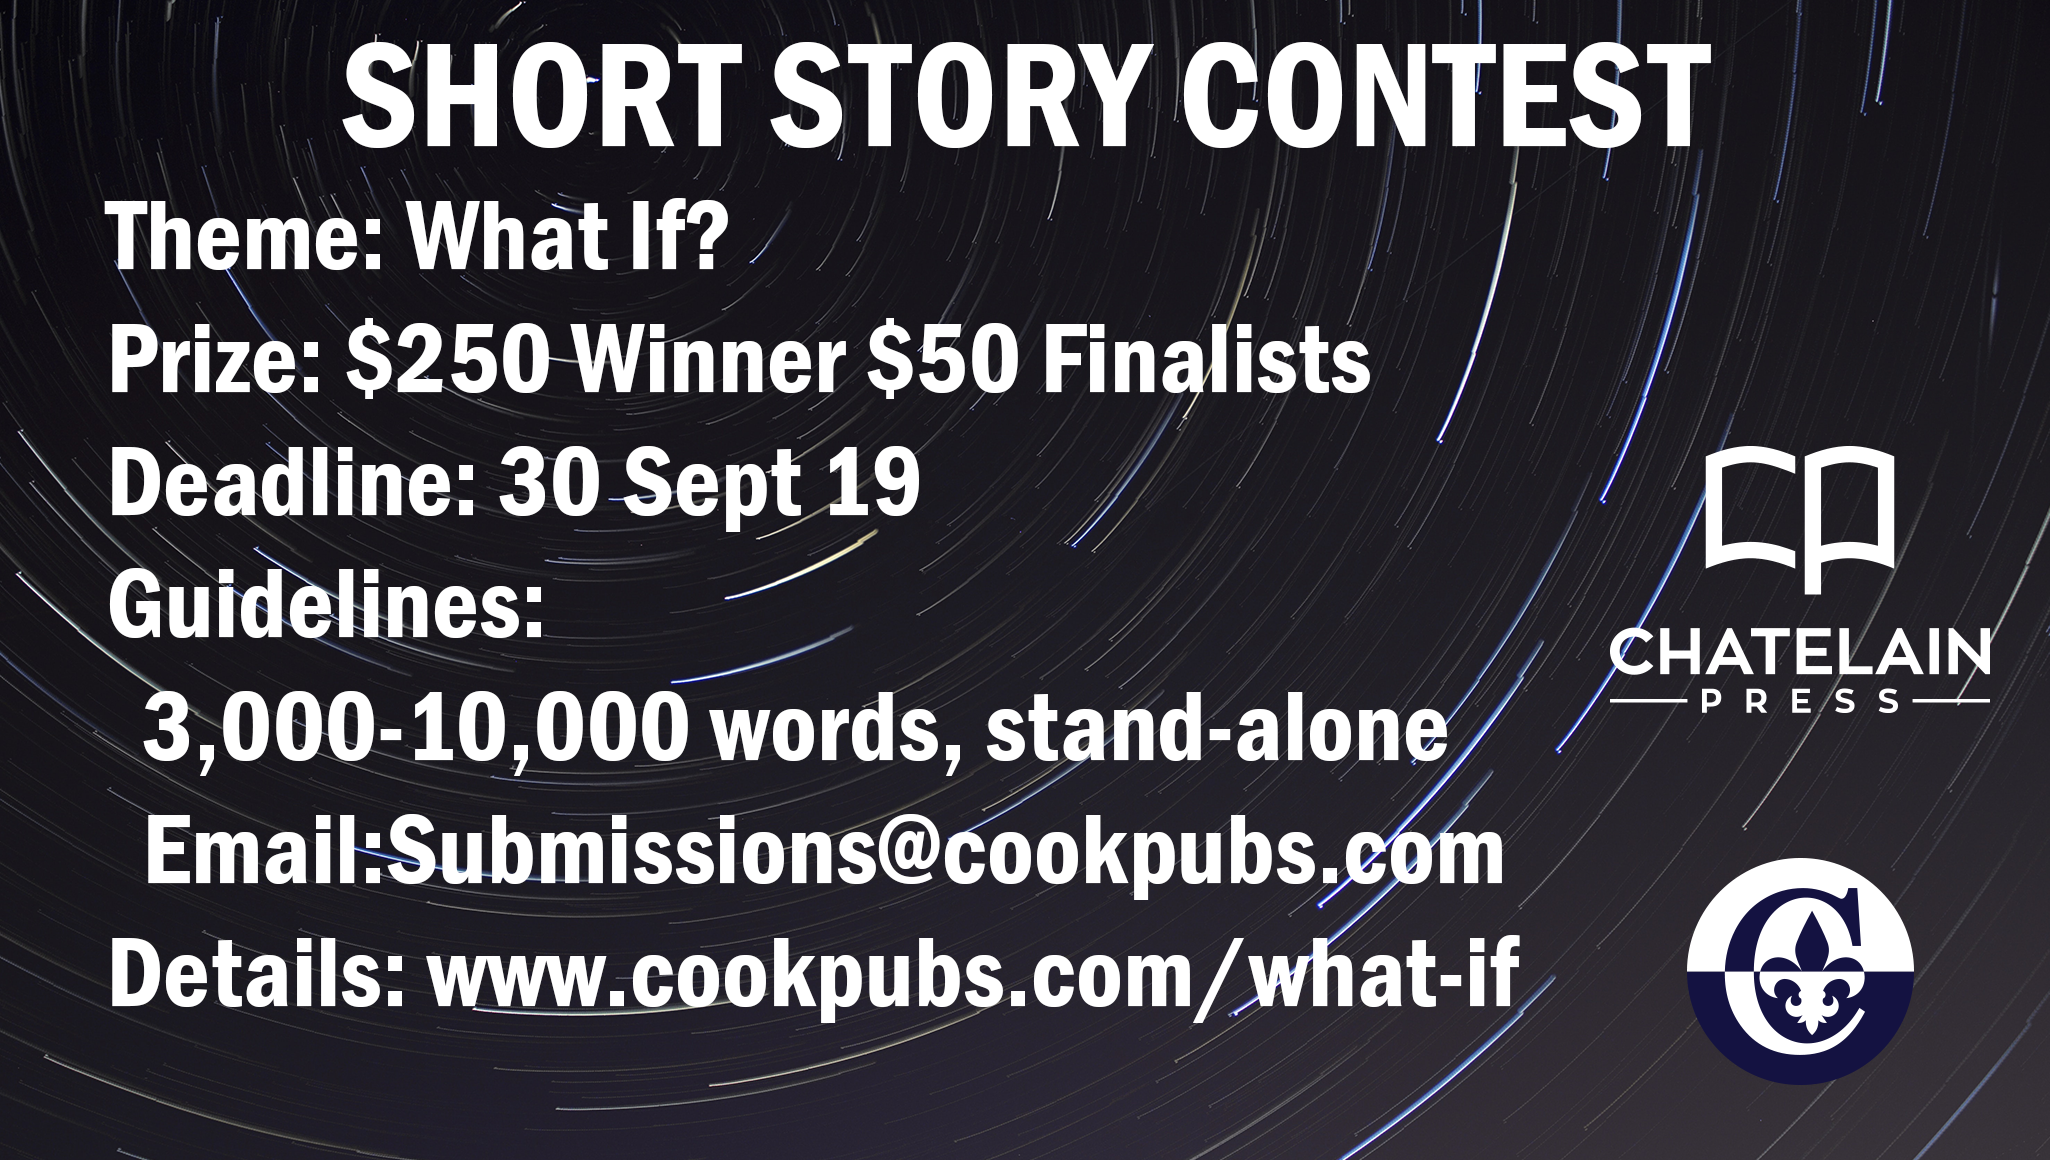 short story contest storyboard.png